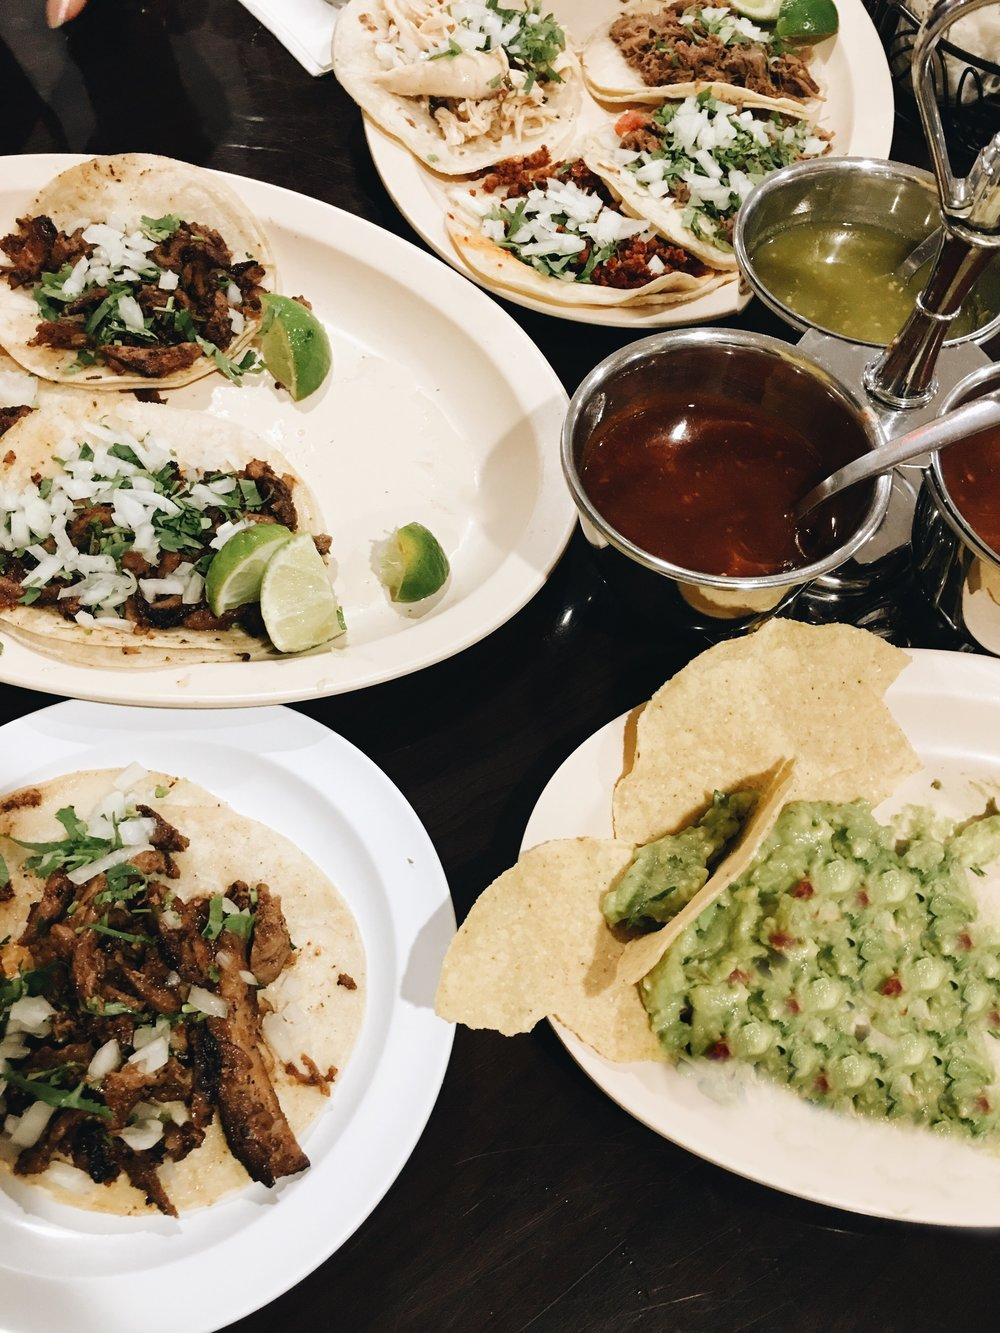 best. tacos ever. it's a little hole in the wall located on Bayview Drive called Taqueria San Julian. it's tiny, authentic and pure amazing. a must try.